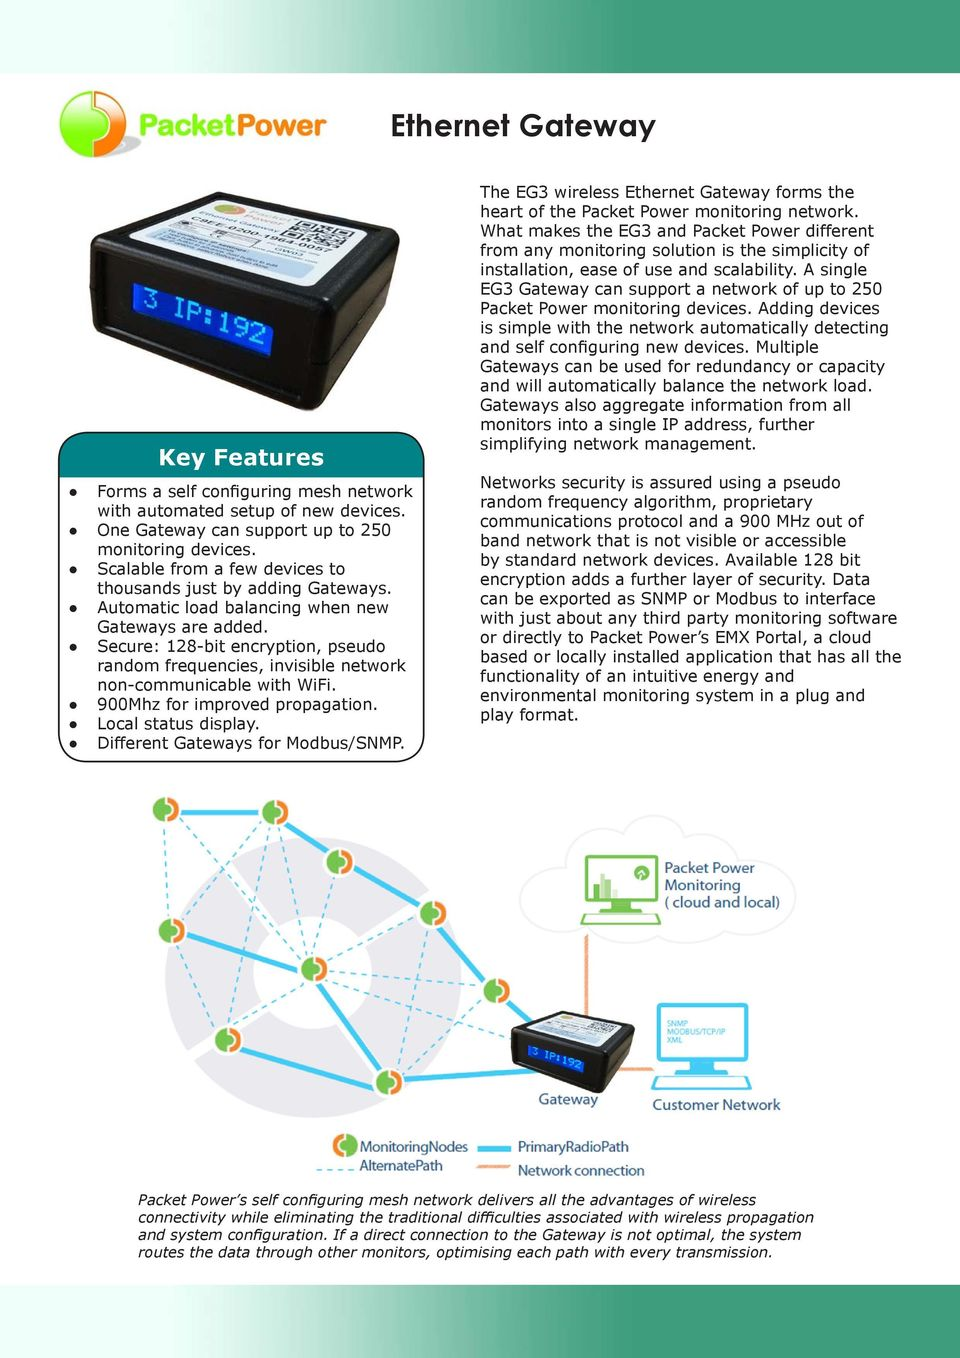 Secure: 128-bit encryption, pseudo random frequencies, invisible network non-communicable with WiFi. 900Mhz for improved propagation. Local status display. Different Gateways for Modbus/SNMP.